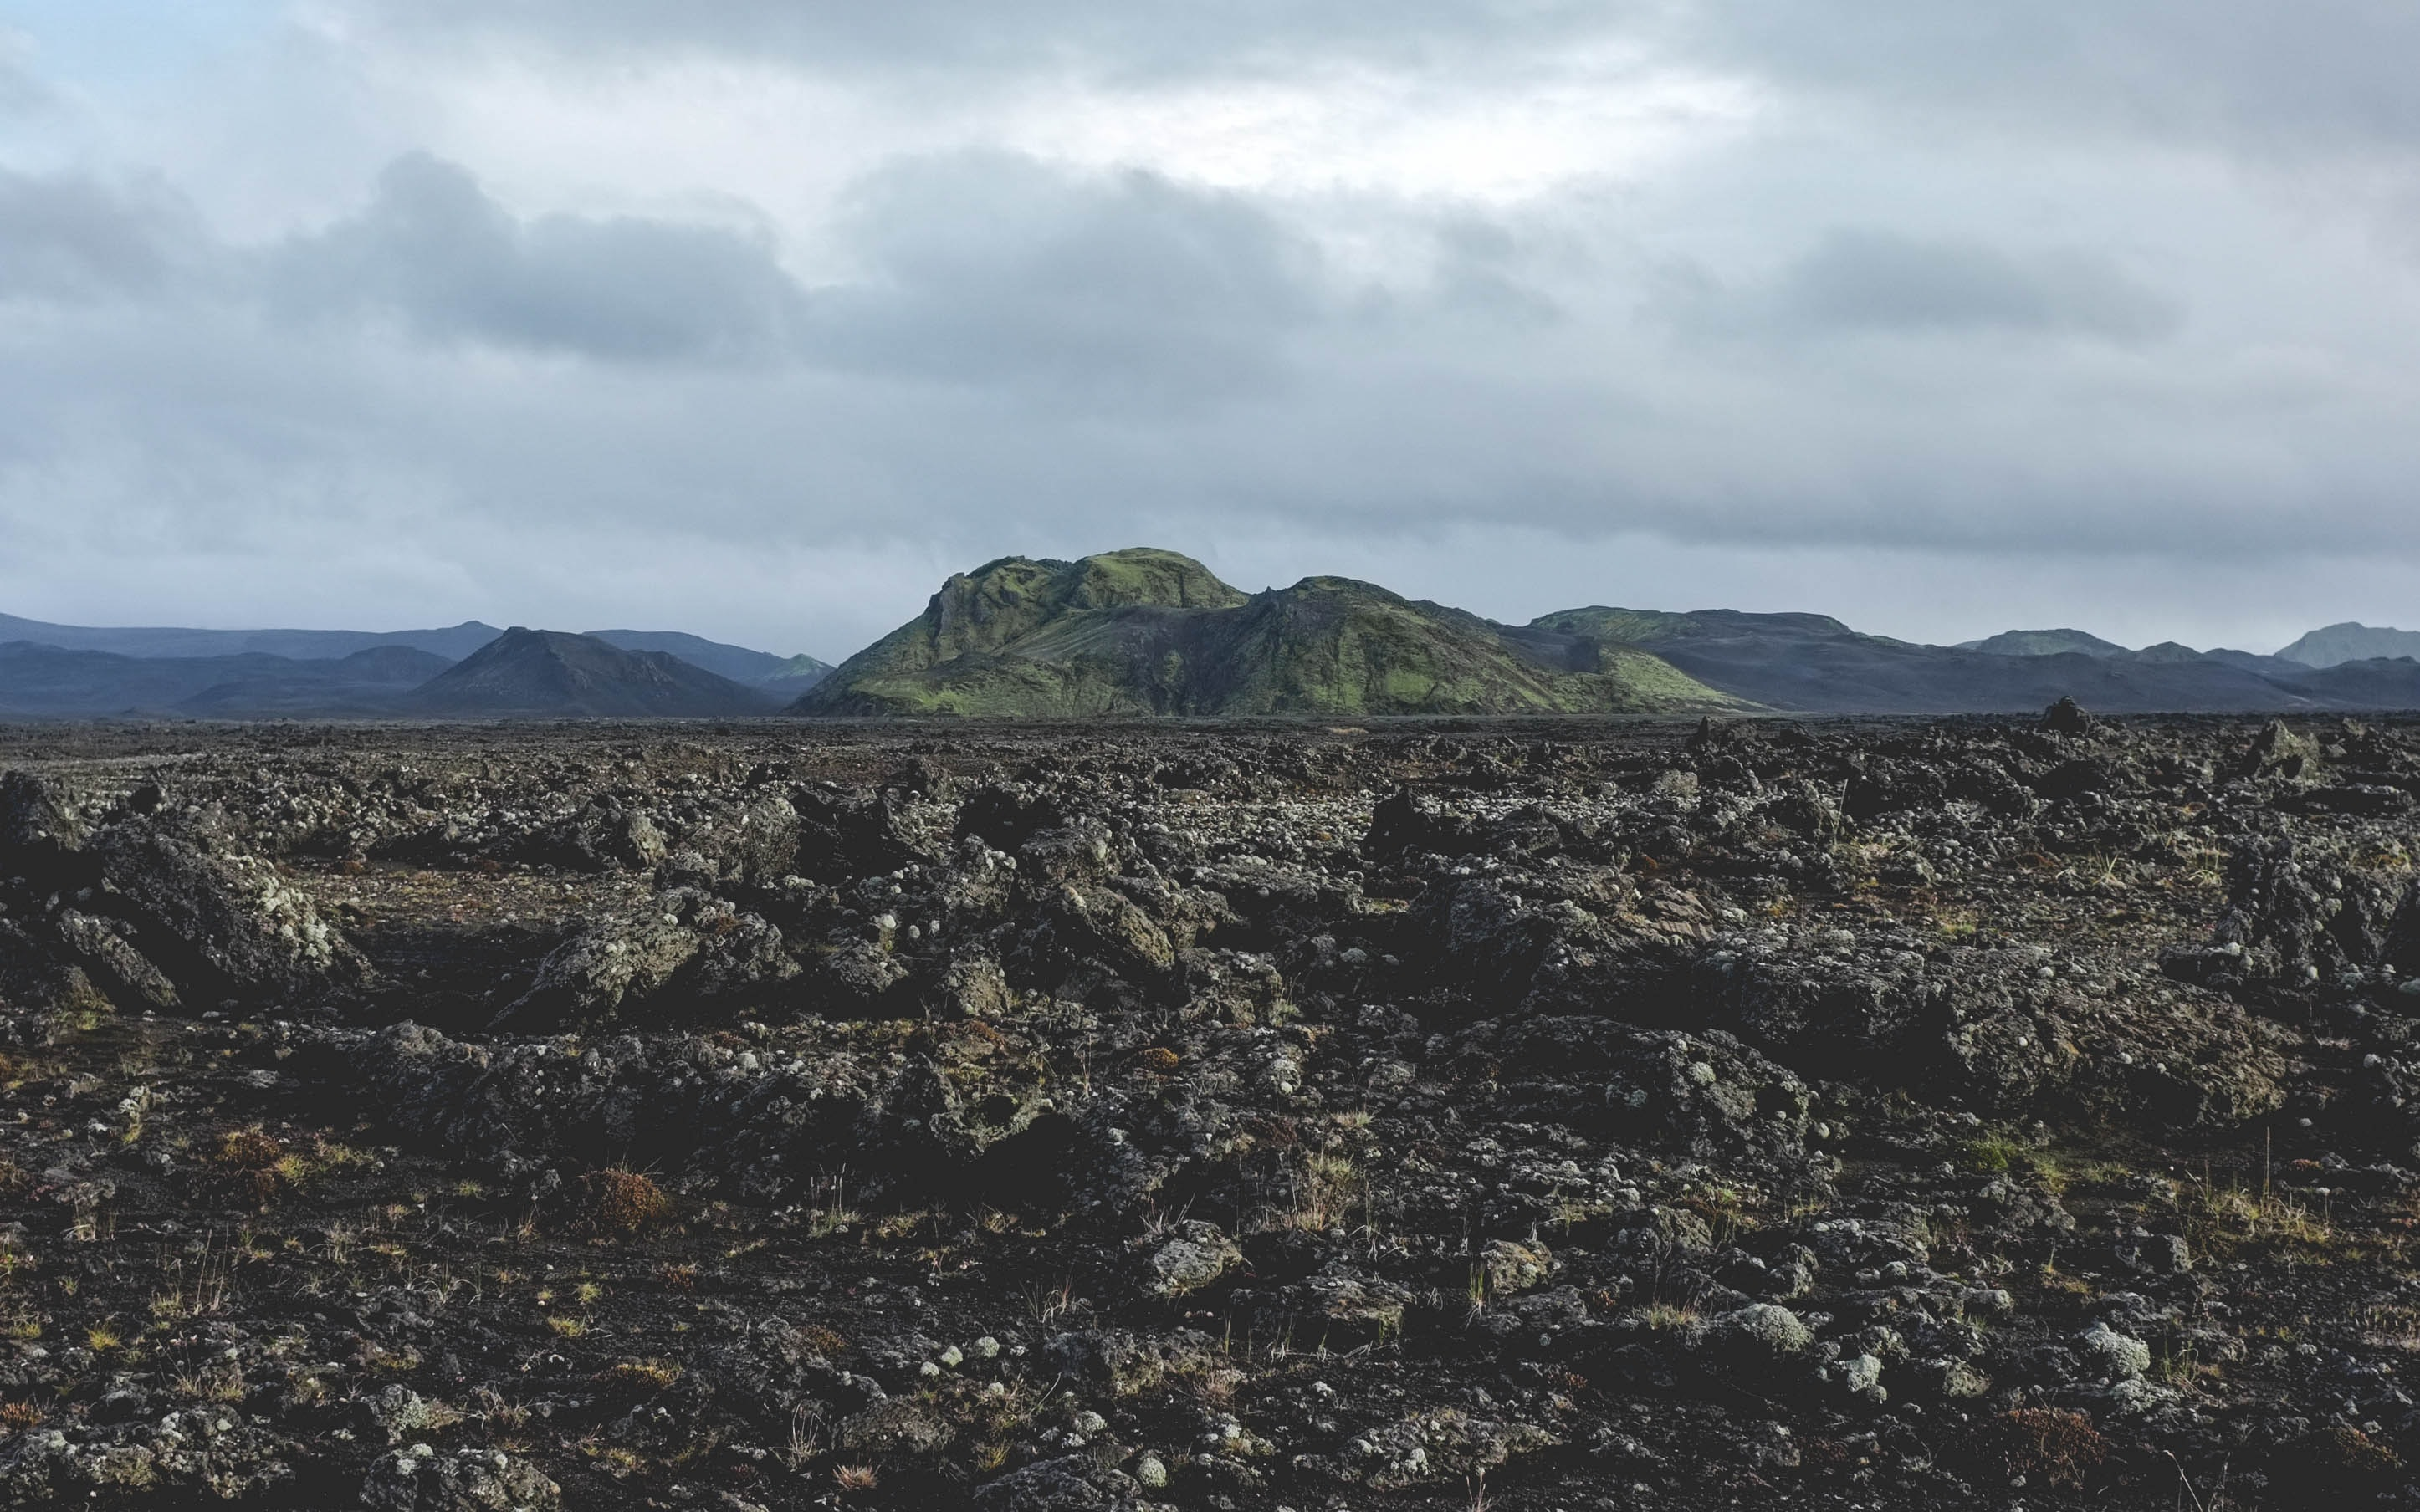 A rocky plain with low green mountains at the back on a cloudy day